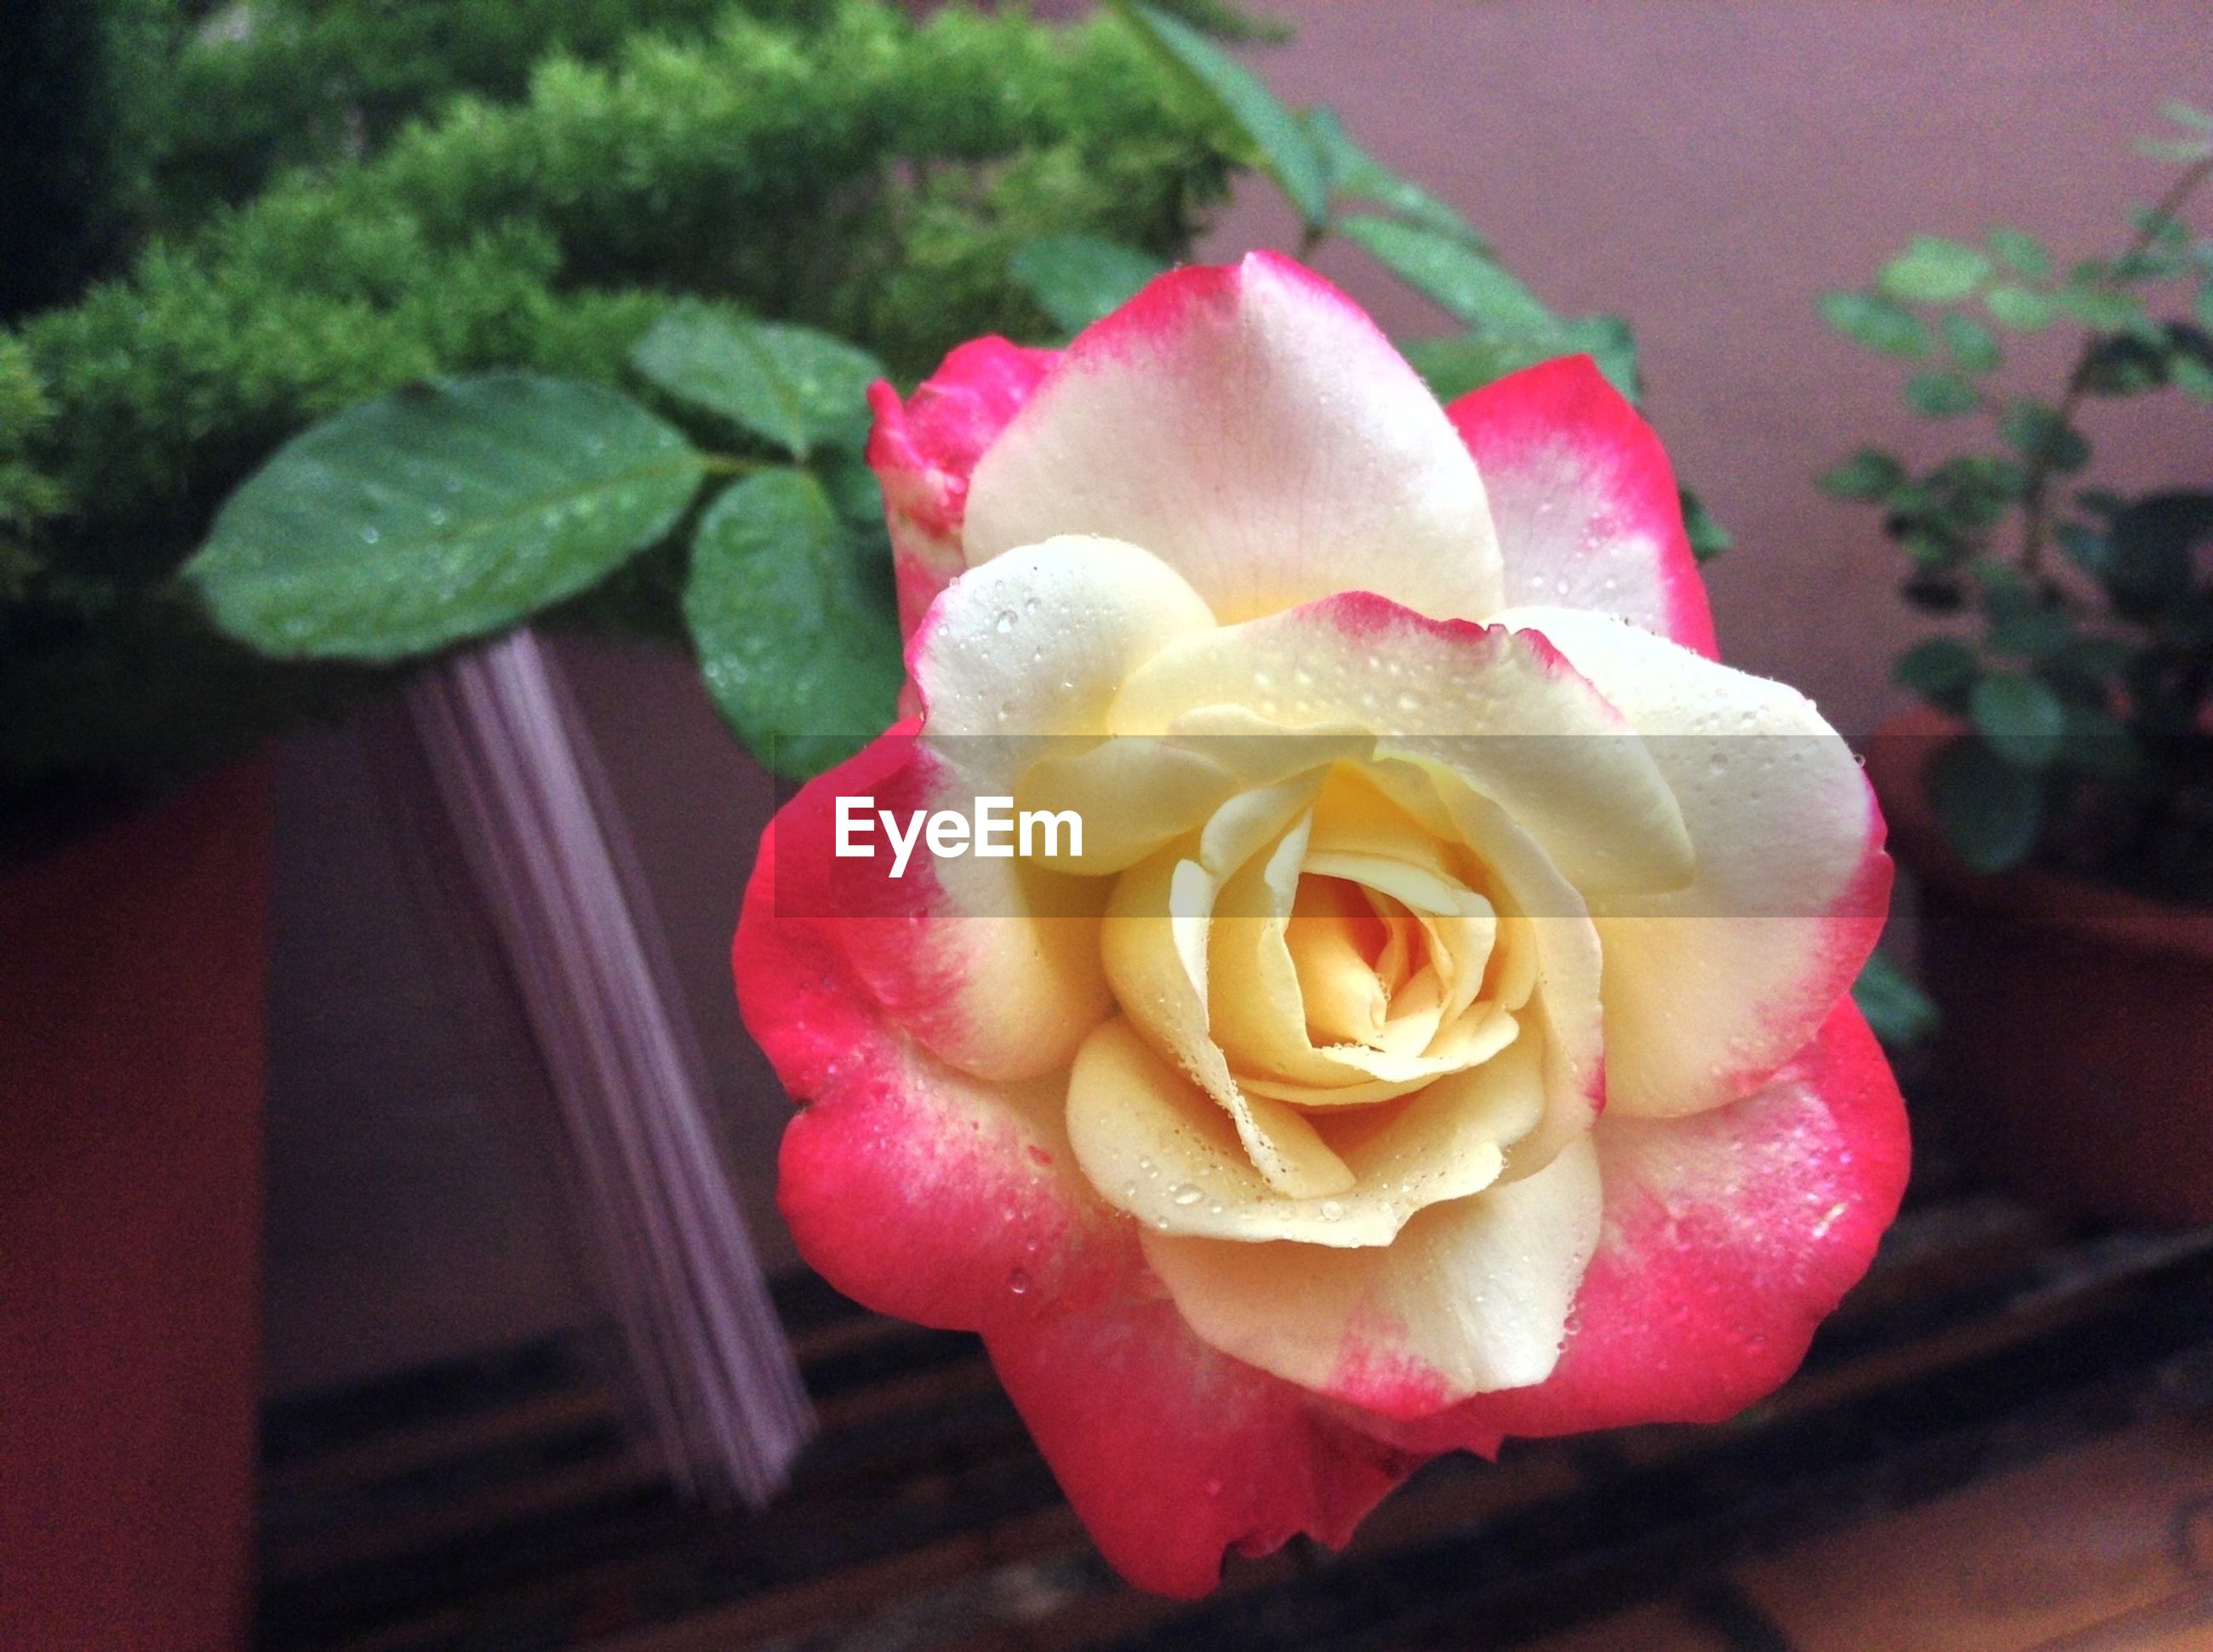 flower, petal, rose - flower, flower head, freshness, fragility, close-up, beauty in nature, pink color, rose, single flower, focus on foreground, nature, growth, indoors, blooming, high angle view, plant, in bloom, water